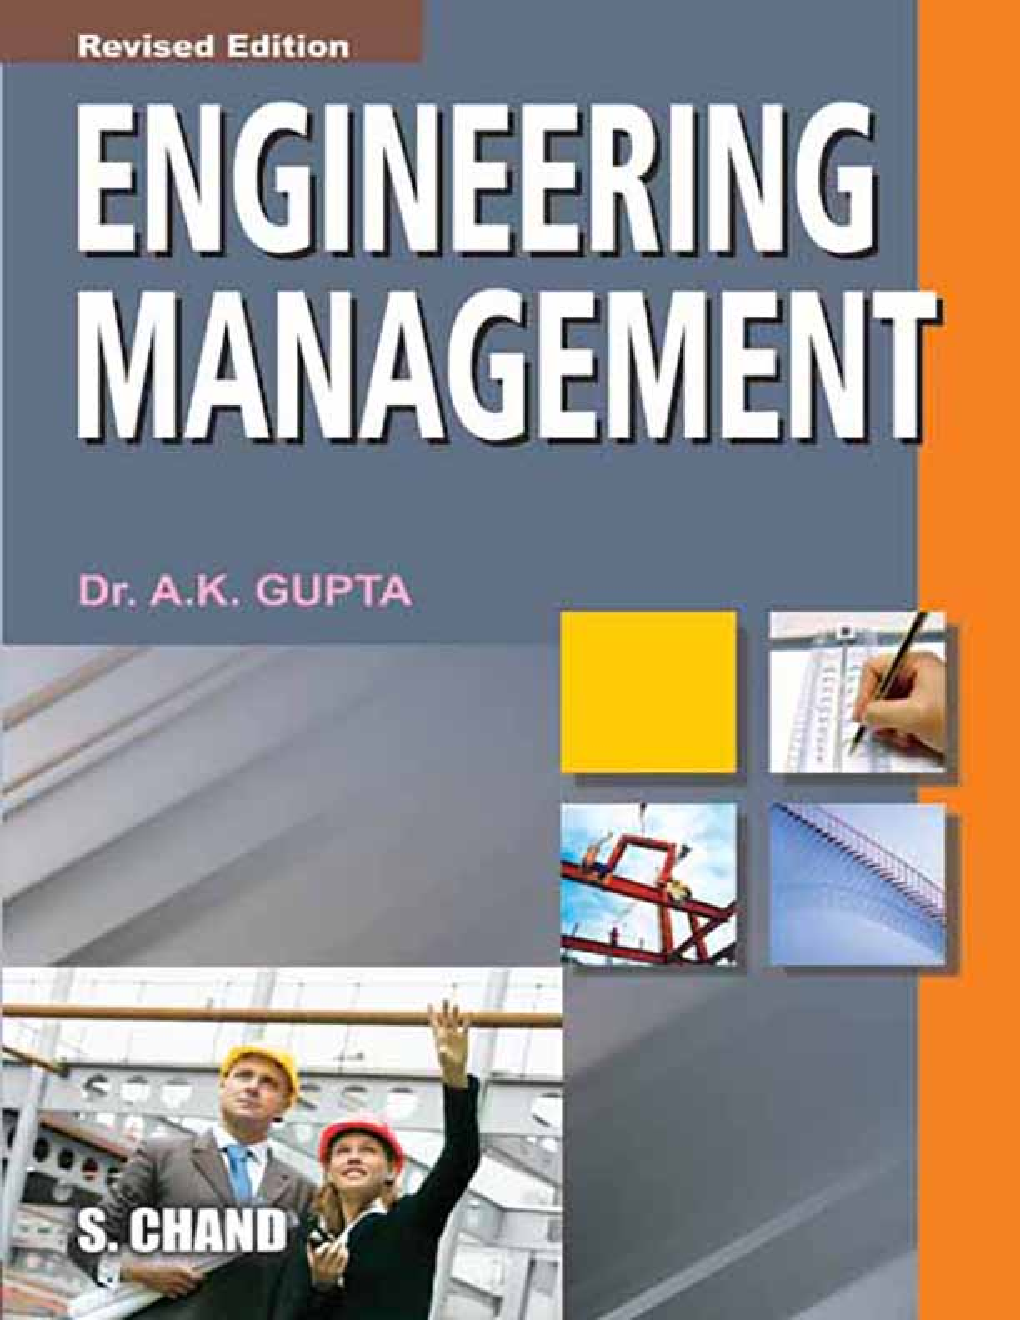 Engineering Management - Page 1